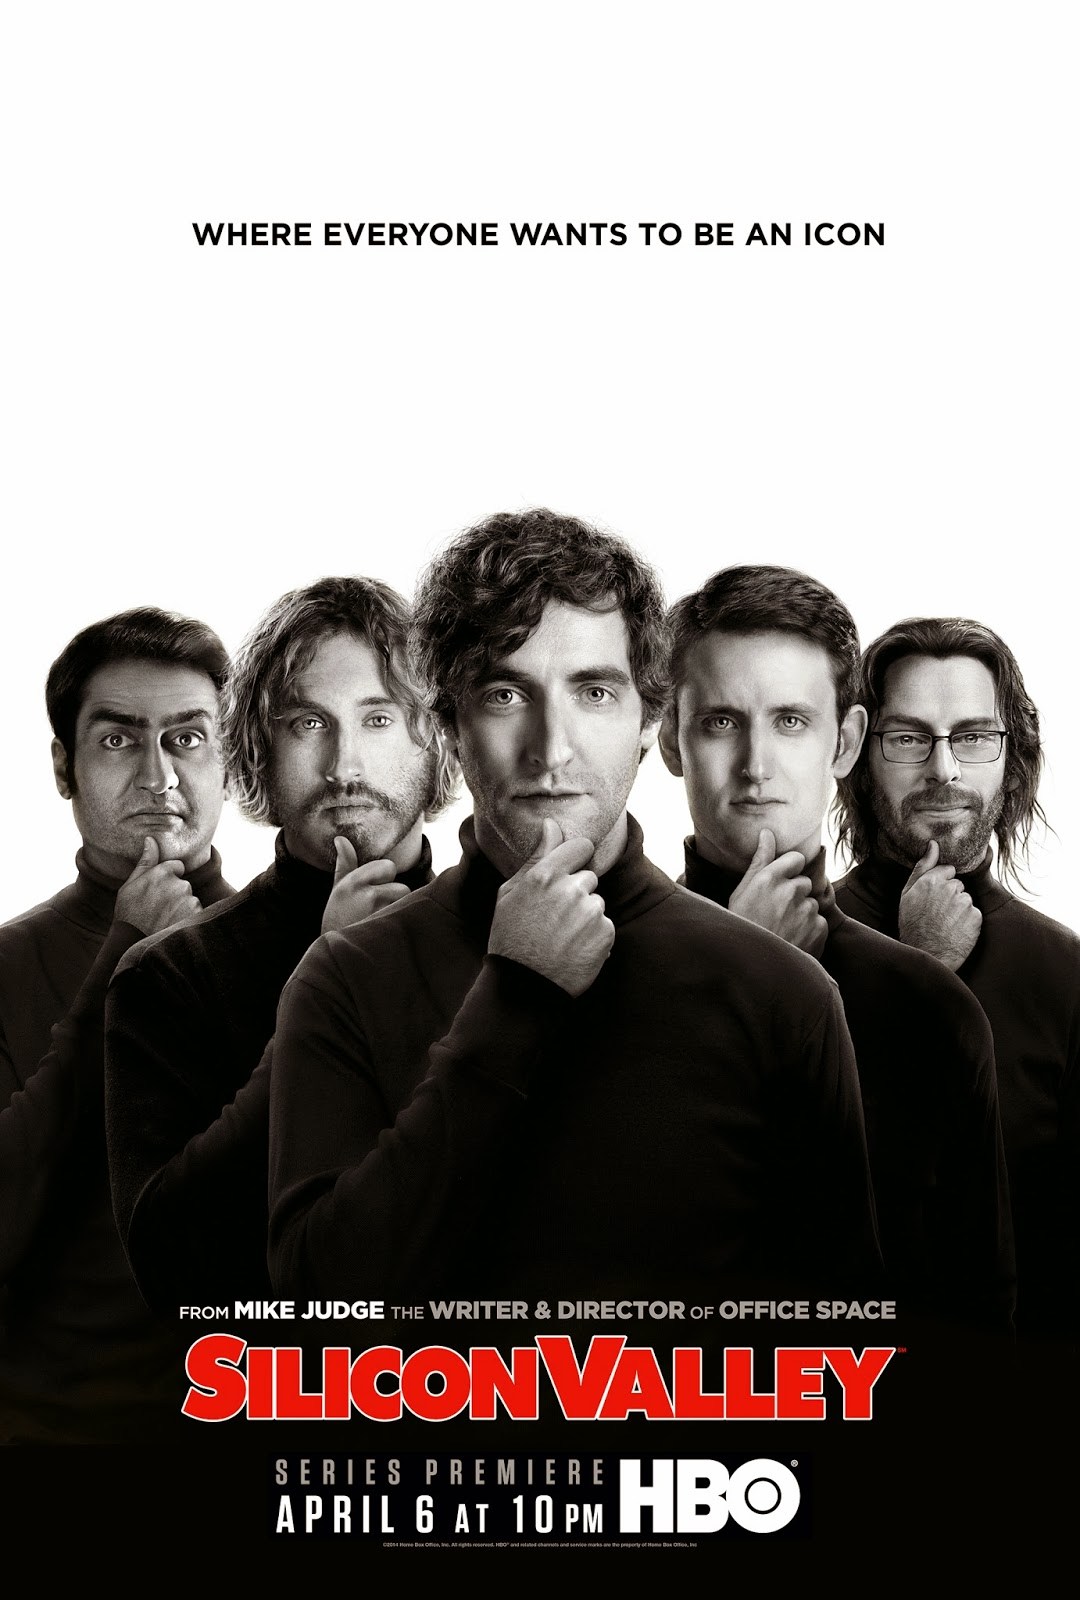 HBO's Silicon Valley brings in the ratings (Oh & Game of Thrones too)